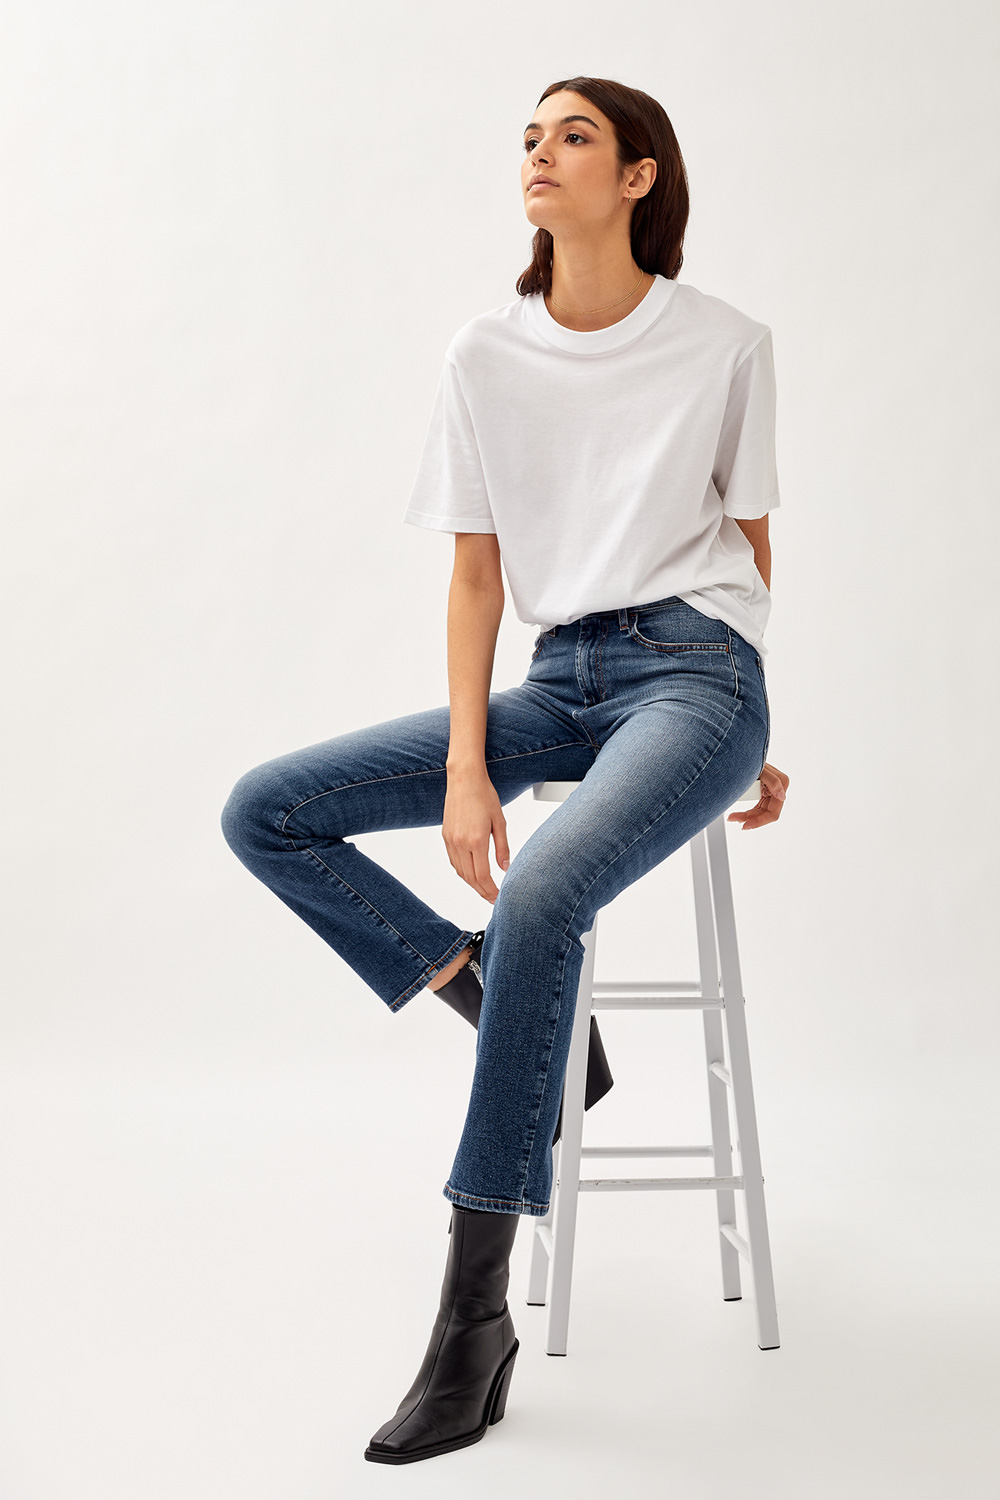 ROY ROGERS: JEANS FLO HIGH GEMMA IN DENIM SUPER STRETCH